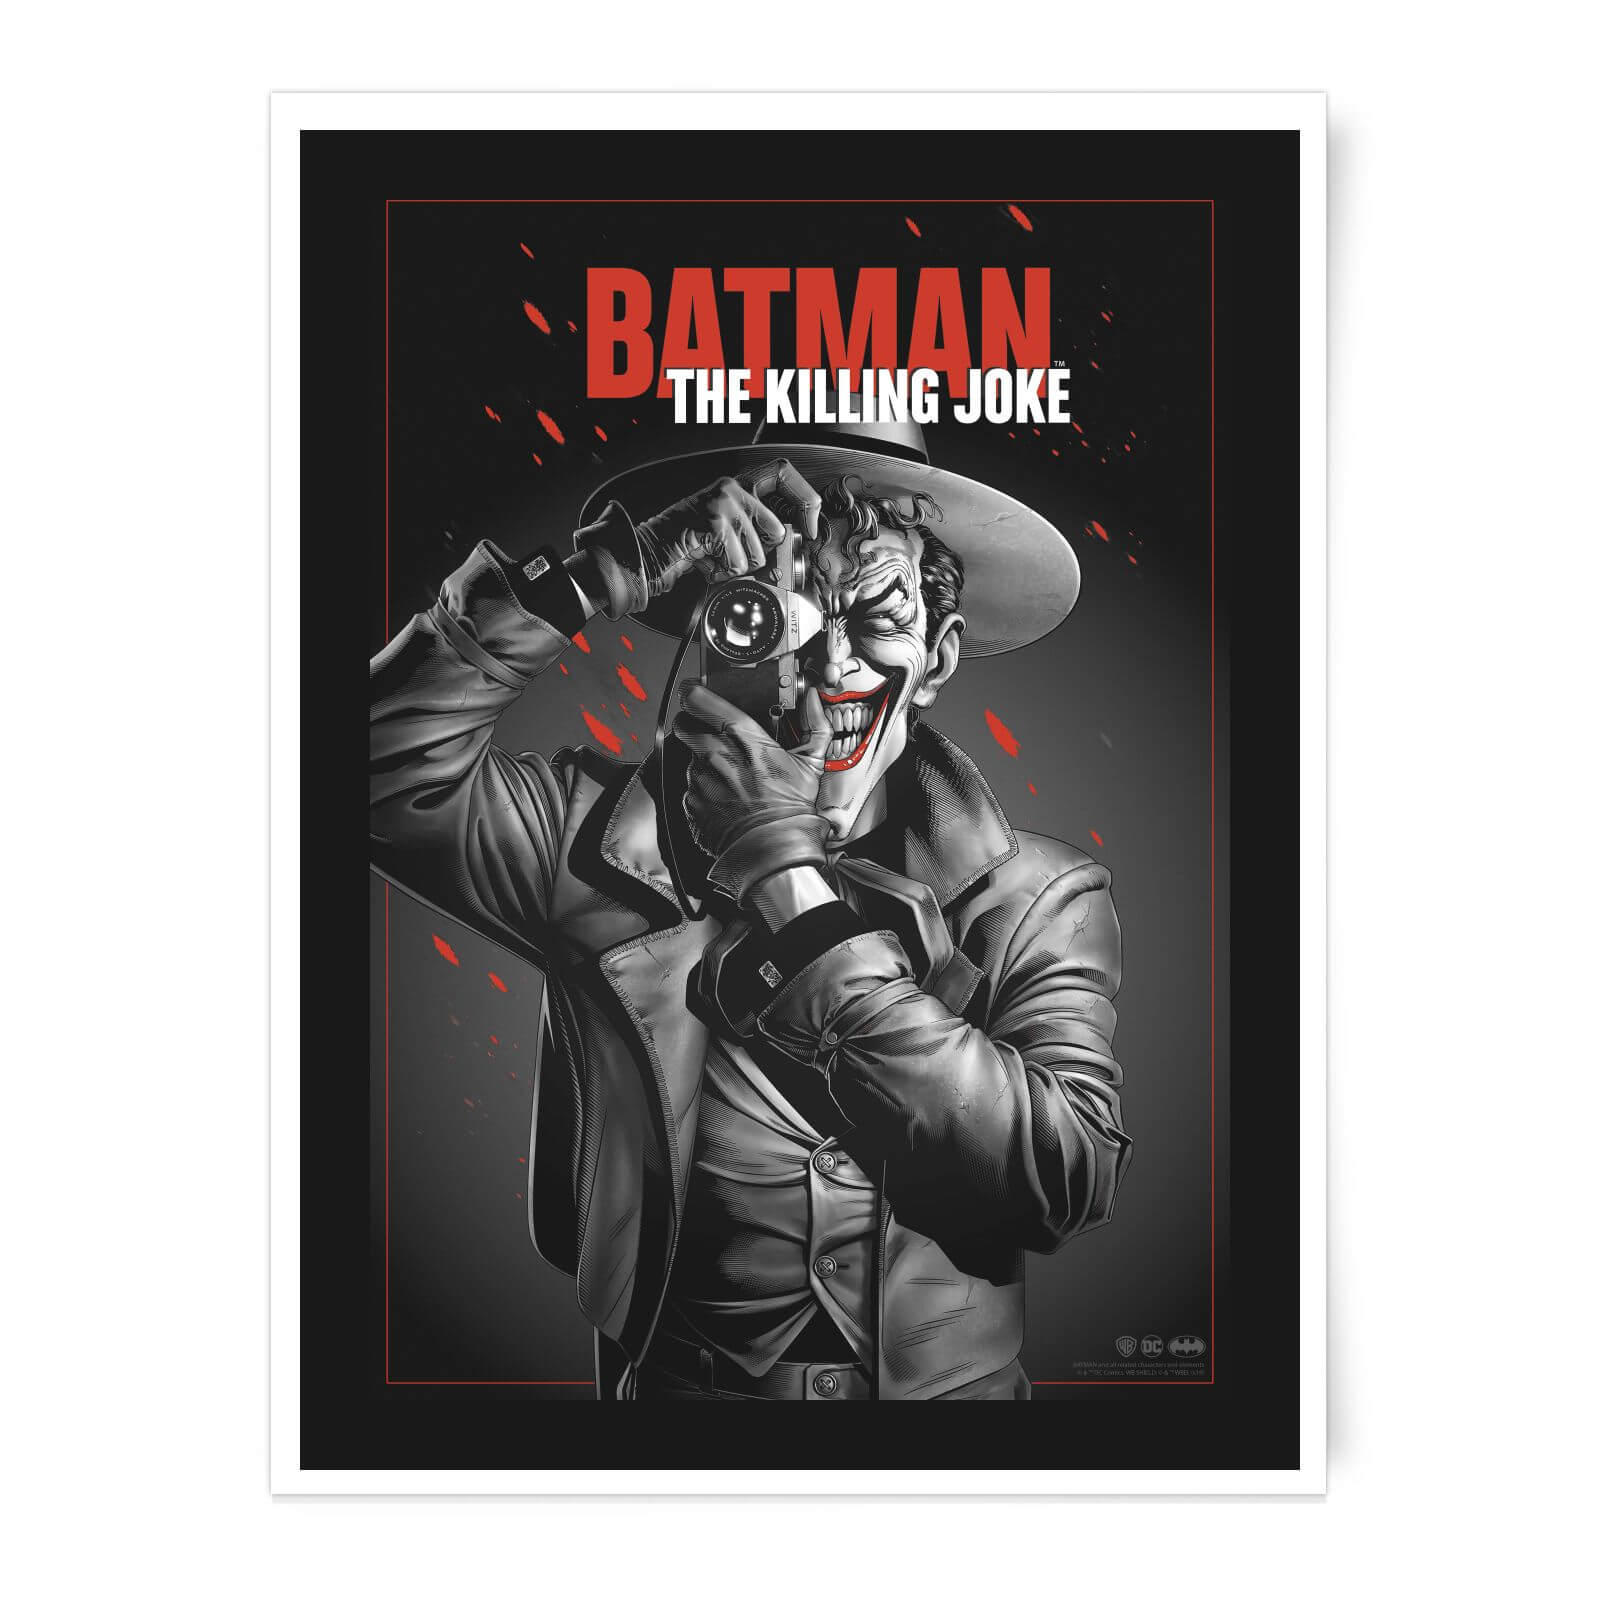 Póster Fine Art Giclée The Killing Joke - A3 de DC Comics